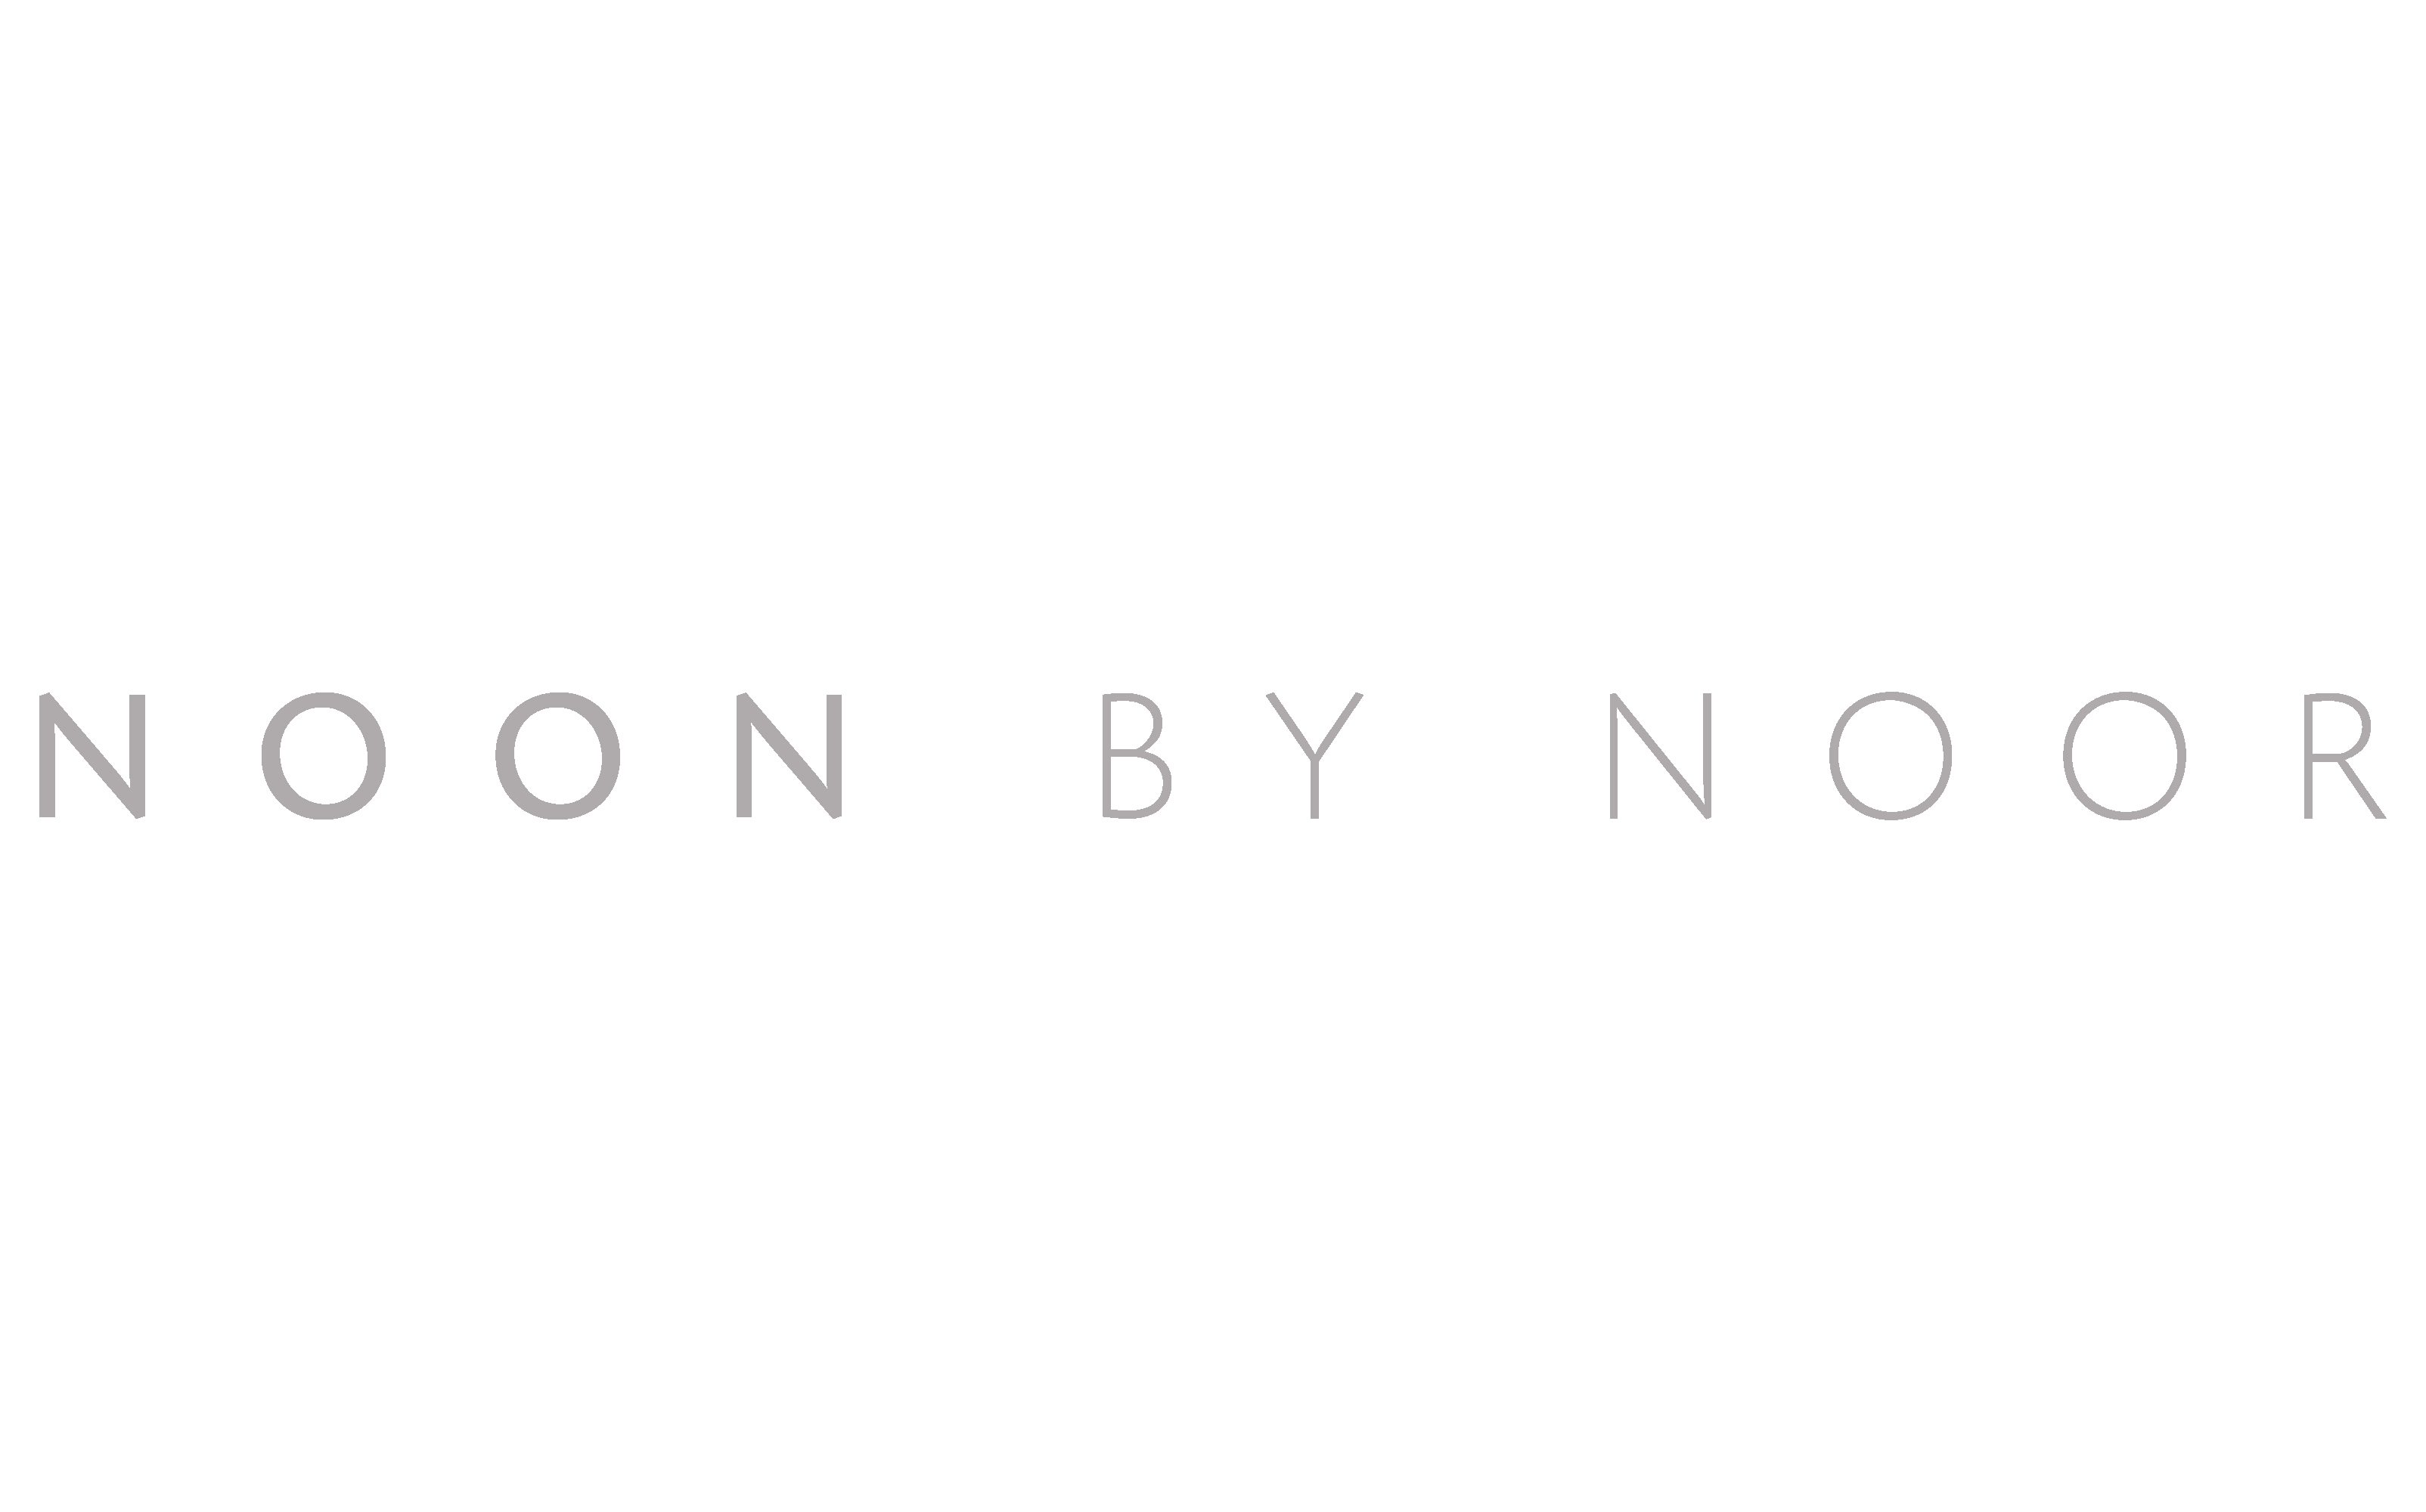 Noon By Noor company logo